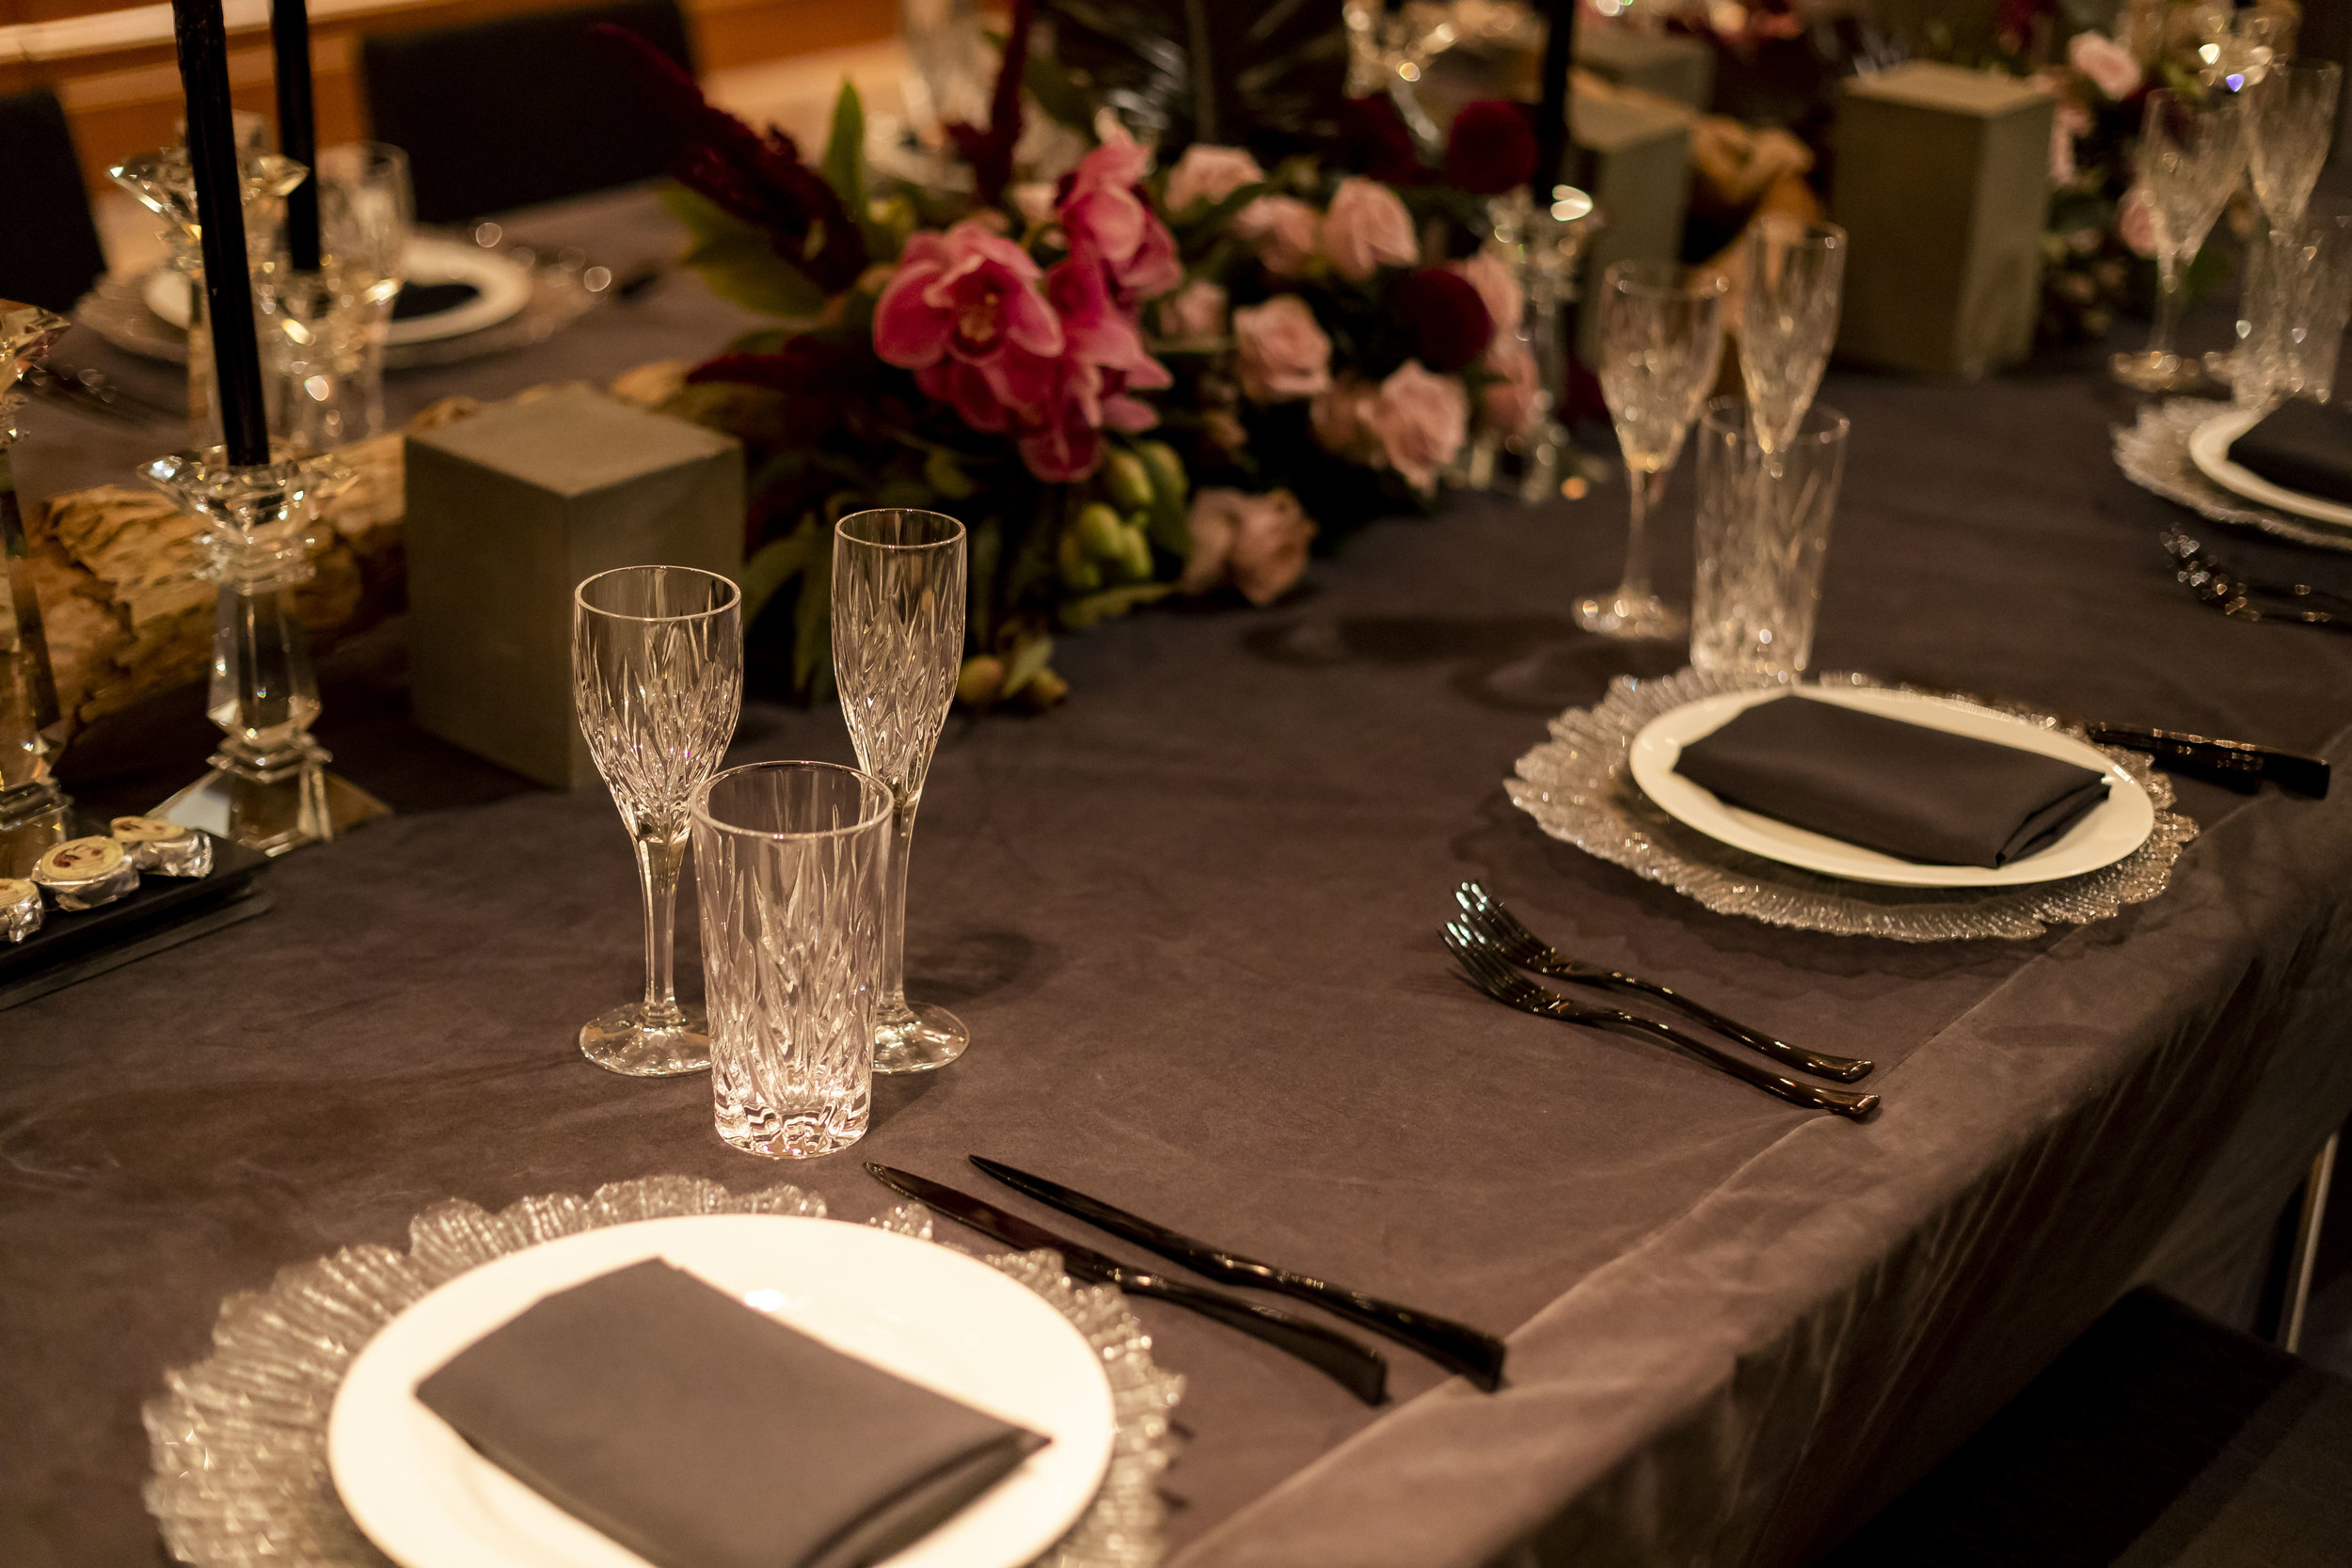 Corporate_dinner_event_design_Sydney_Inlighten_Photography_flowers_charger_plates_black_cutlery_events_by_nadia_5.jpg